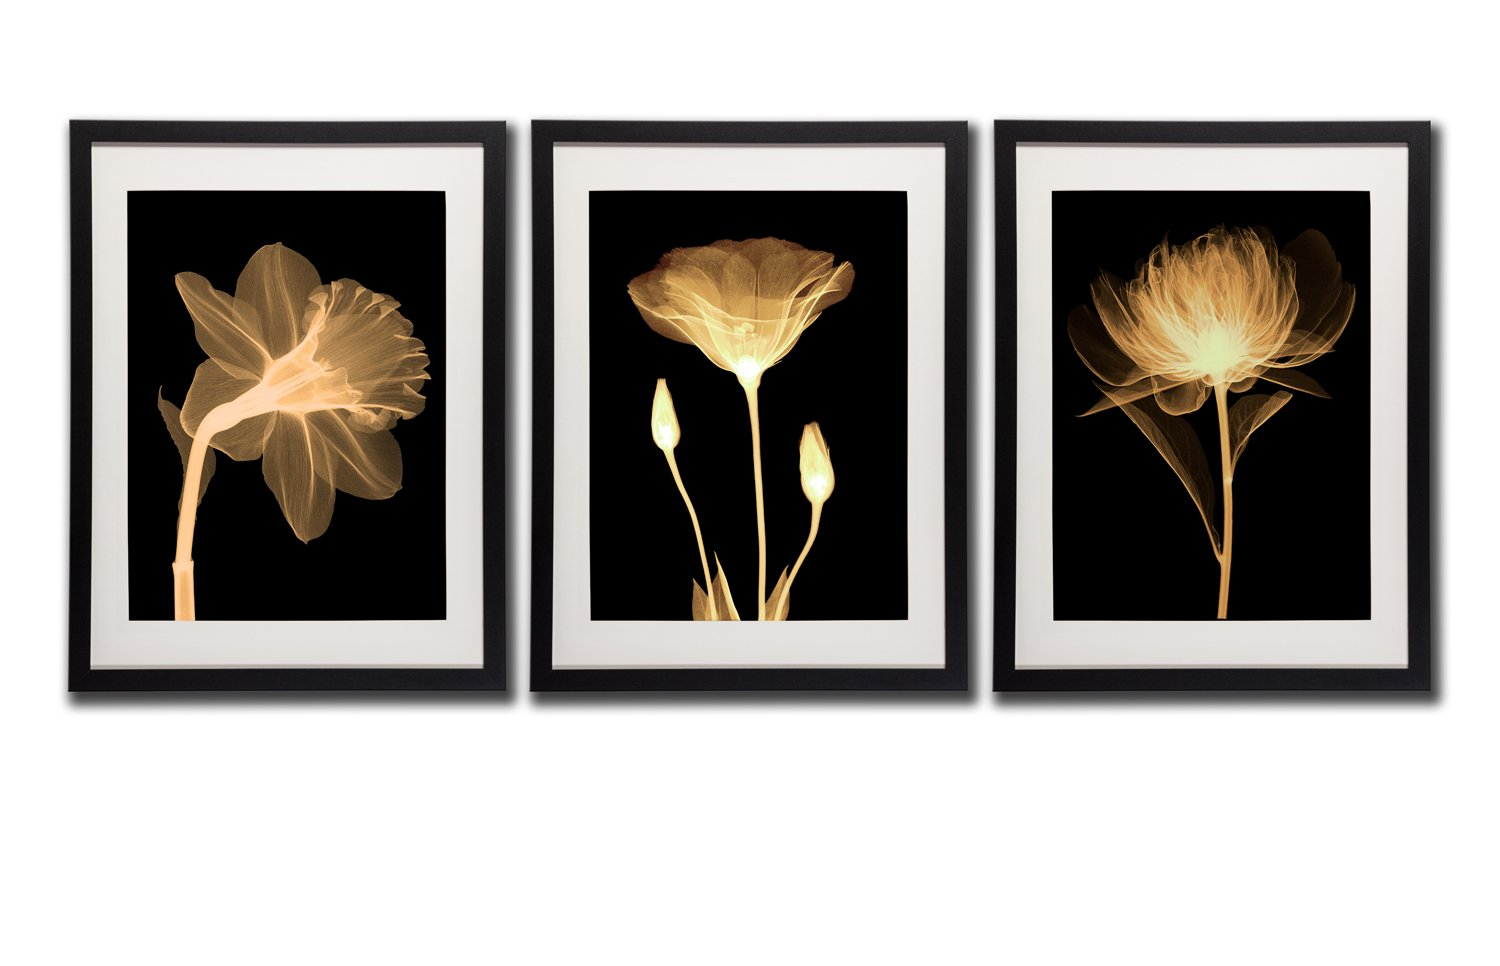 Black Golden Flower Art Canvas Painting Posters Prints Wall Pictures Home Decor